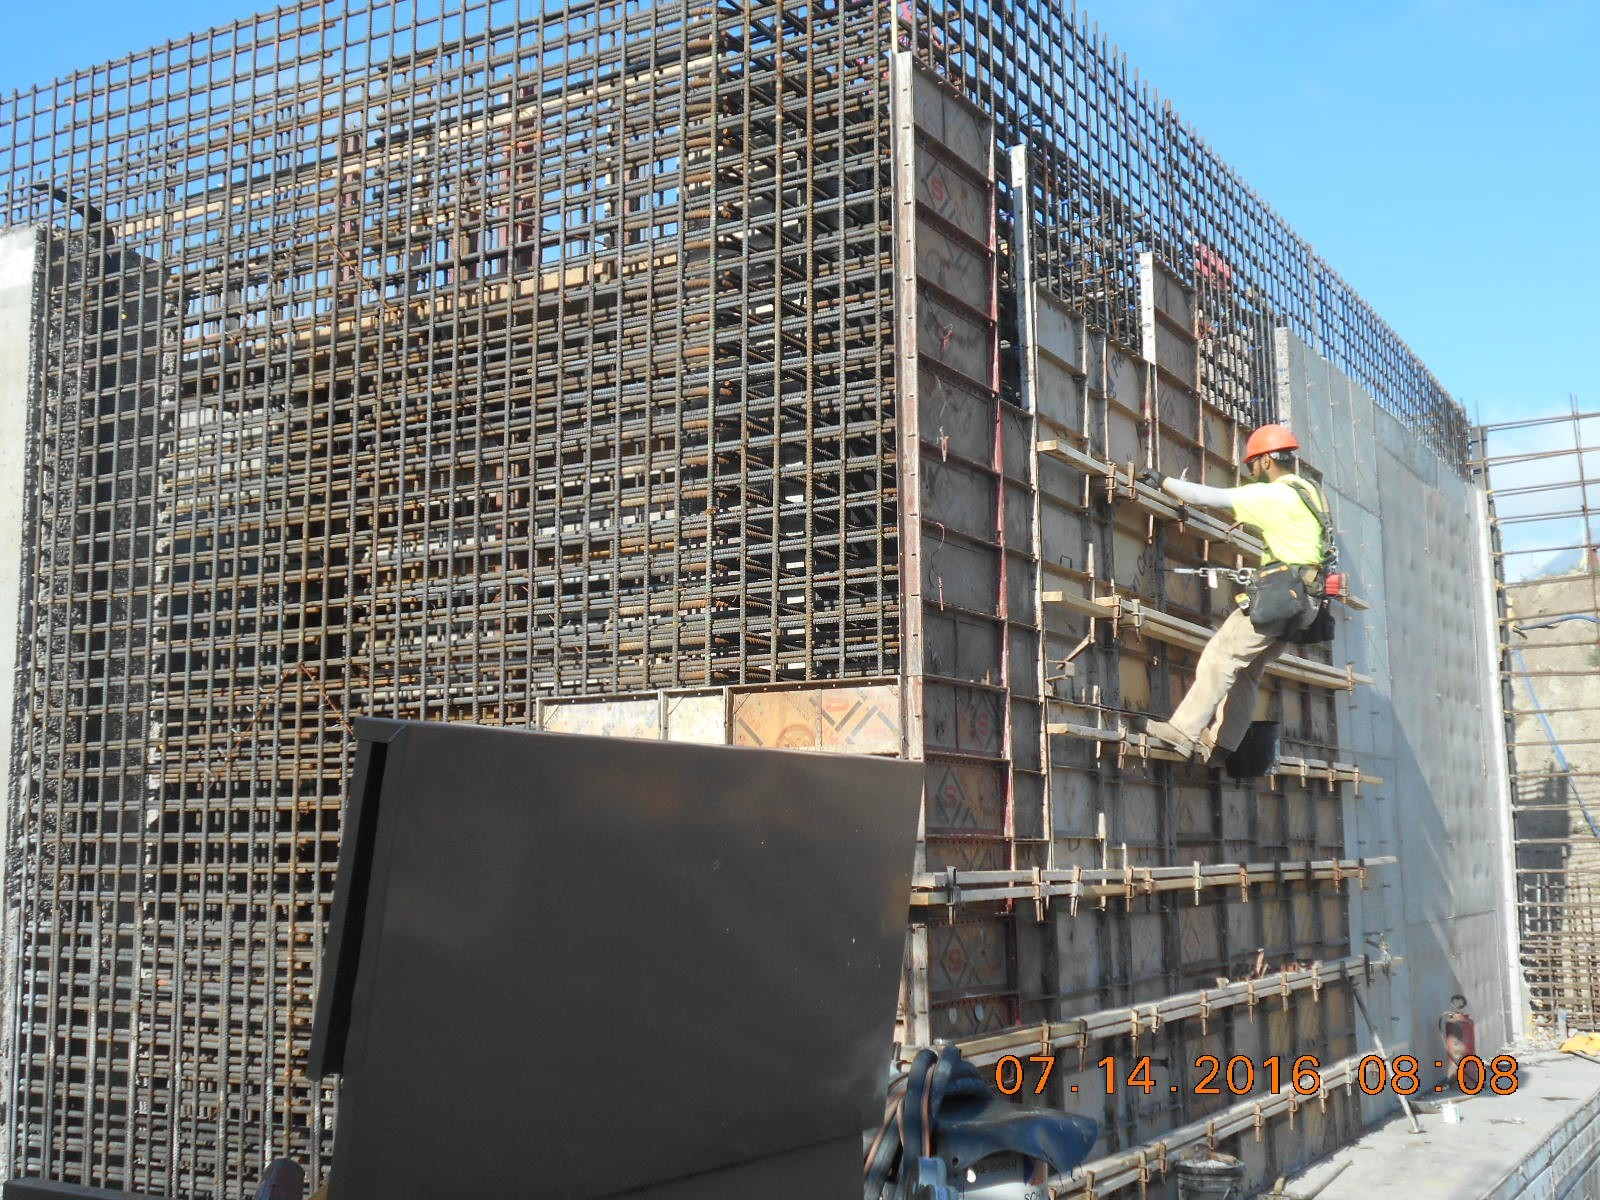 JTJ working on the wall forms for the outside face of the north wall of the Ozone Basin.